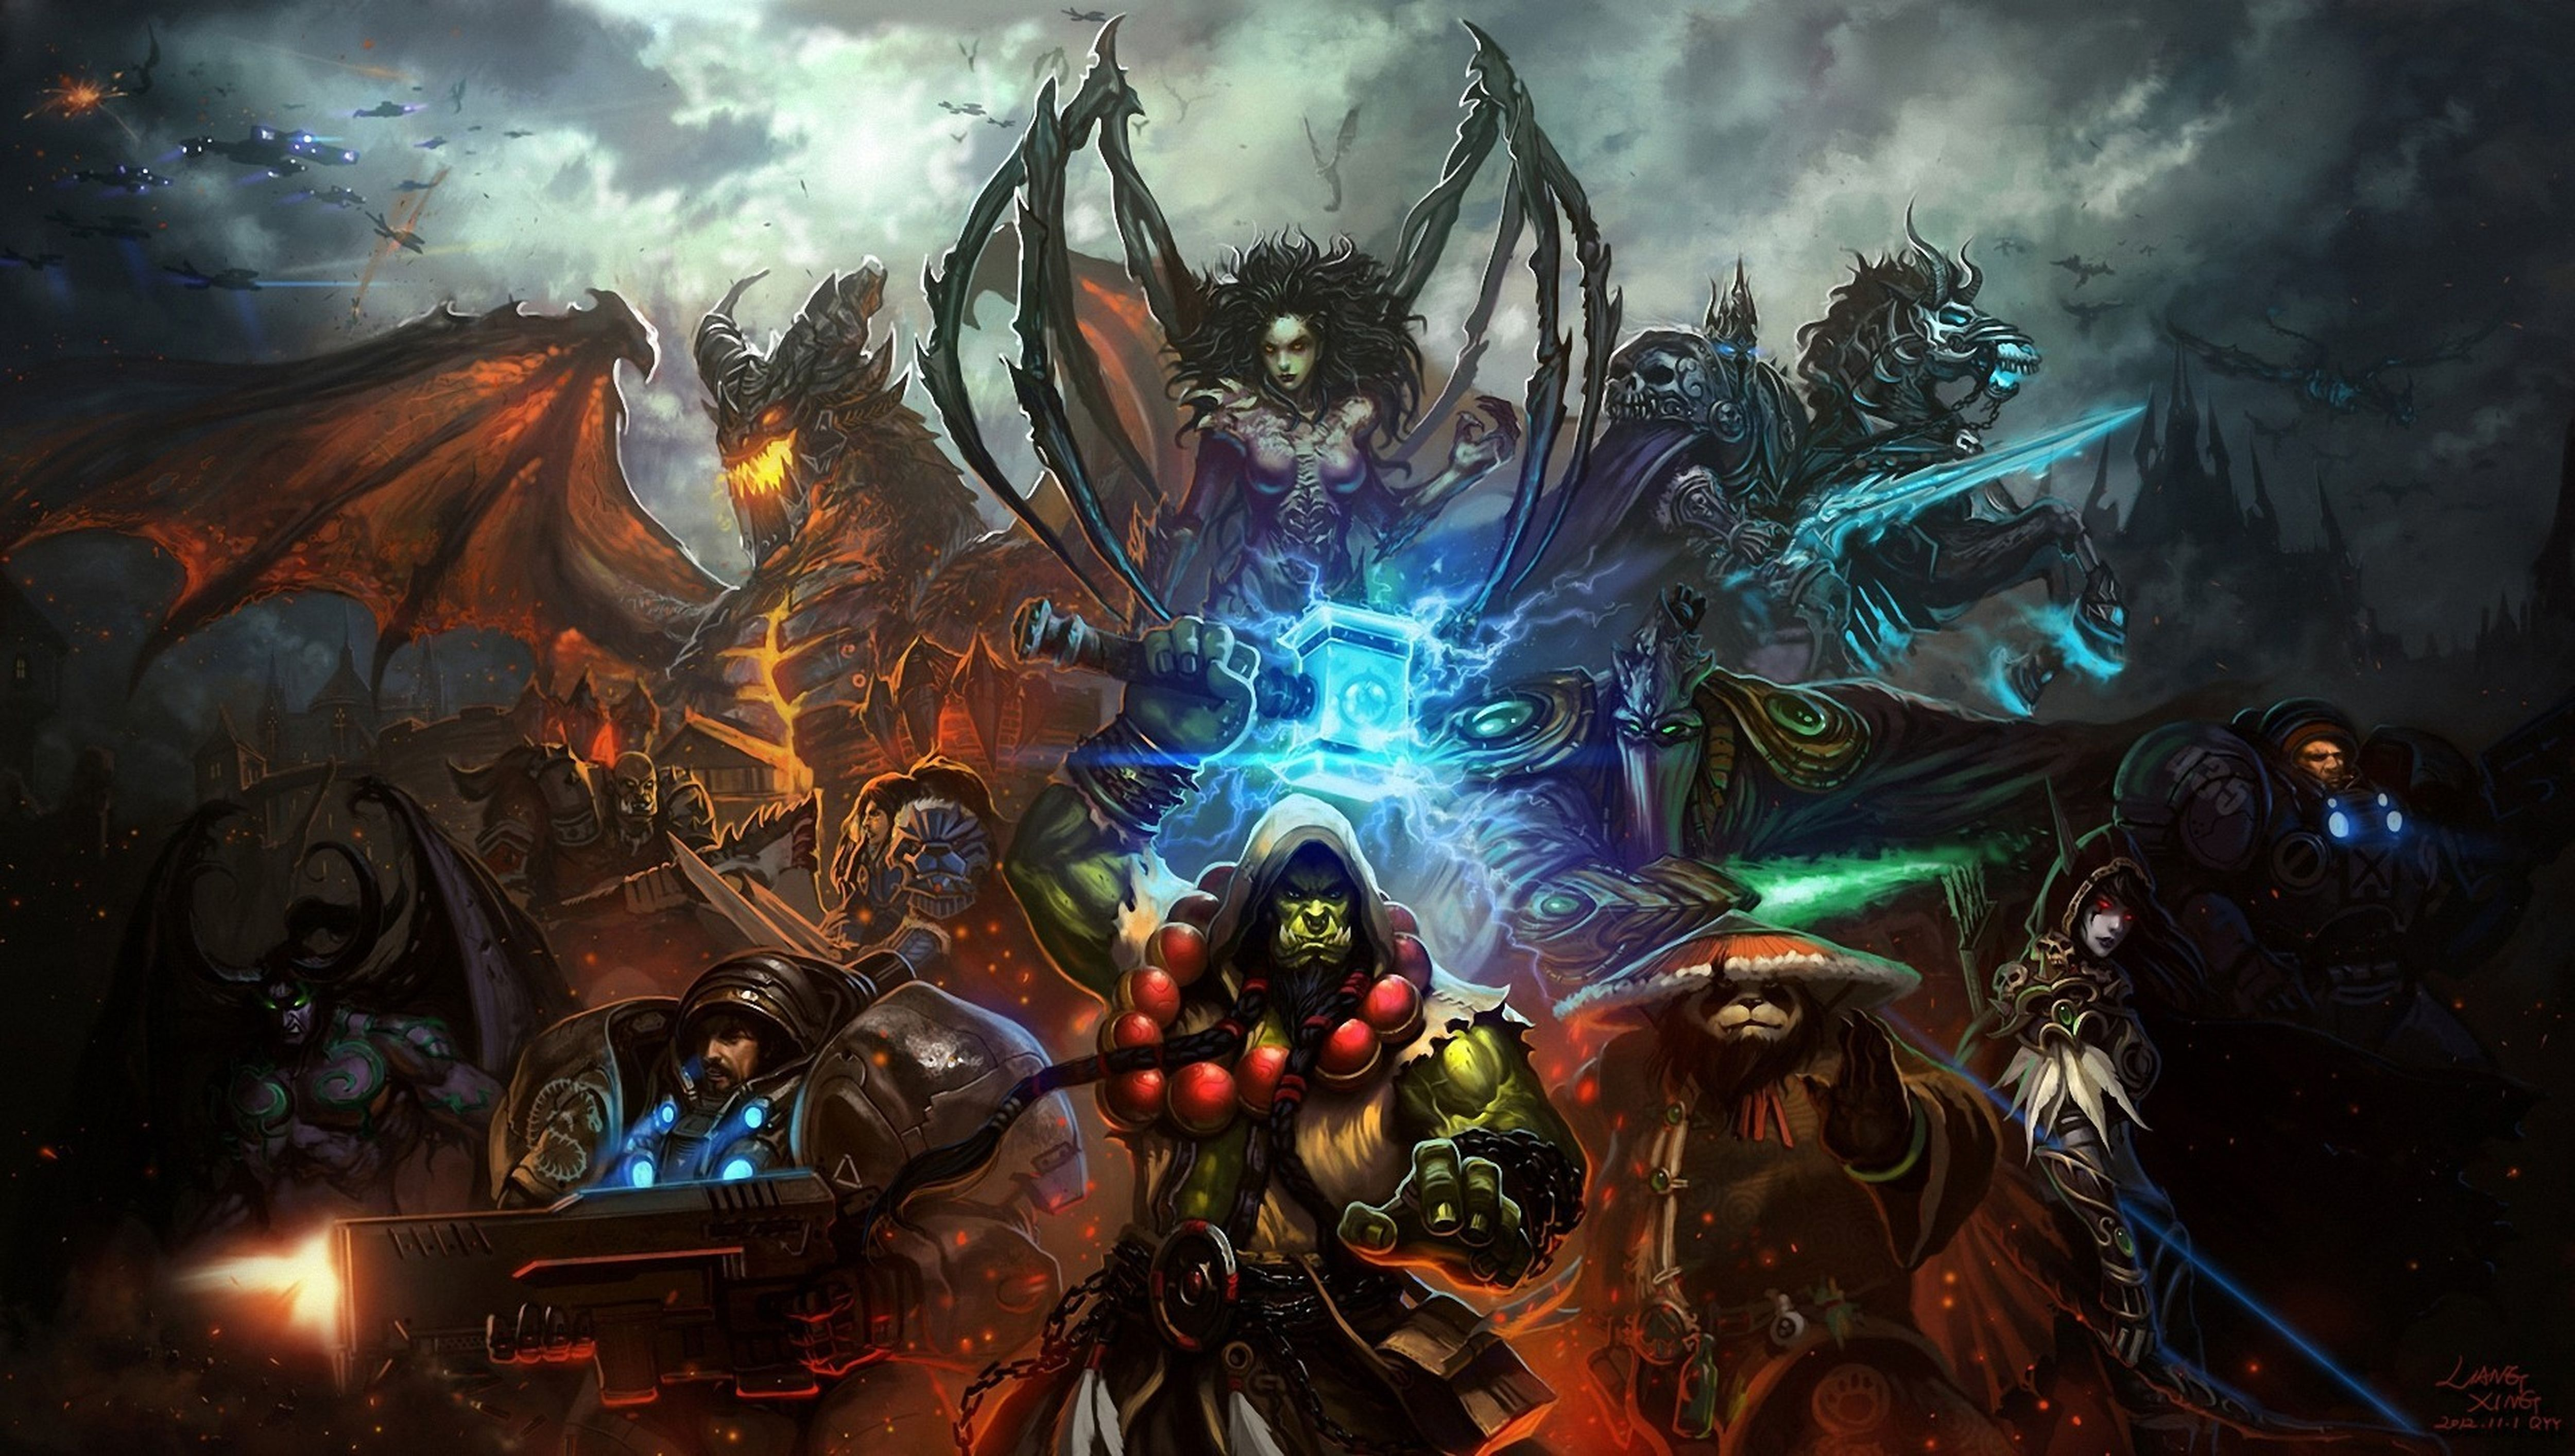 Videogame Wallpapers With Quotes 57 Heroes Of The Storm Hd Wallpapers Backgrounds